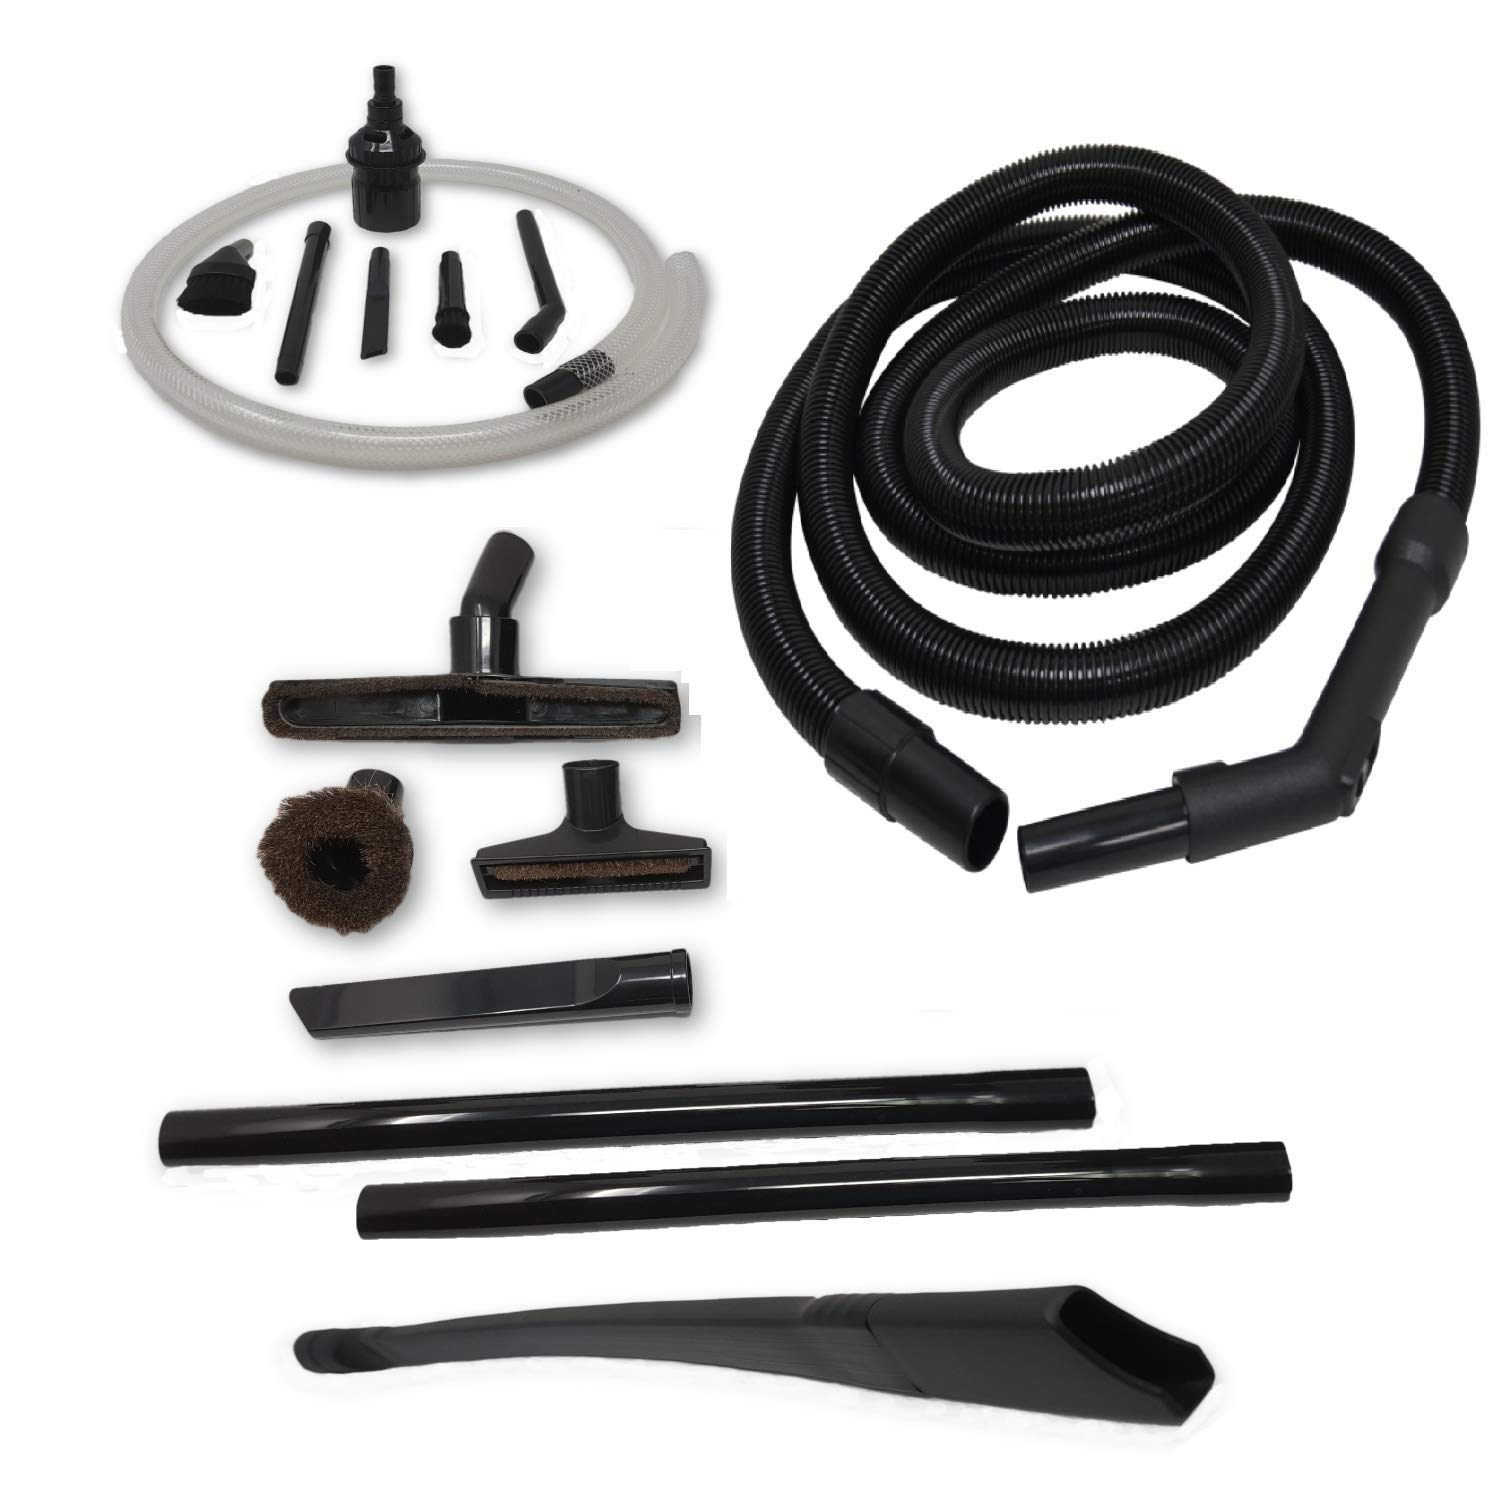 "ZVac Compatible Attachment Kit Replacement for Shark Navigator Lift Away Vacuums. Premium Generic Hose + Accessories Kit + Floor Brush + 24"" Flexible Crevice Tools + Micro Vacuum Attachments + More"